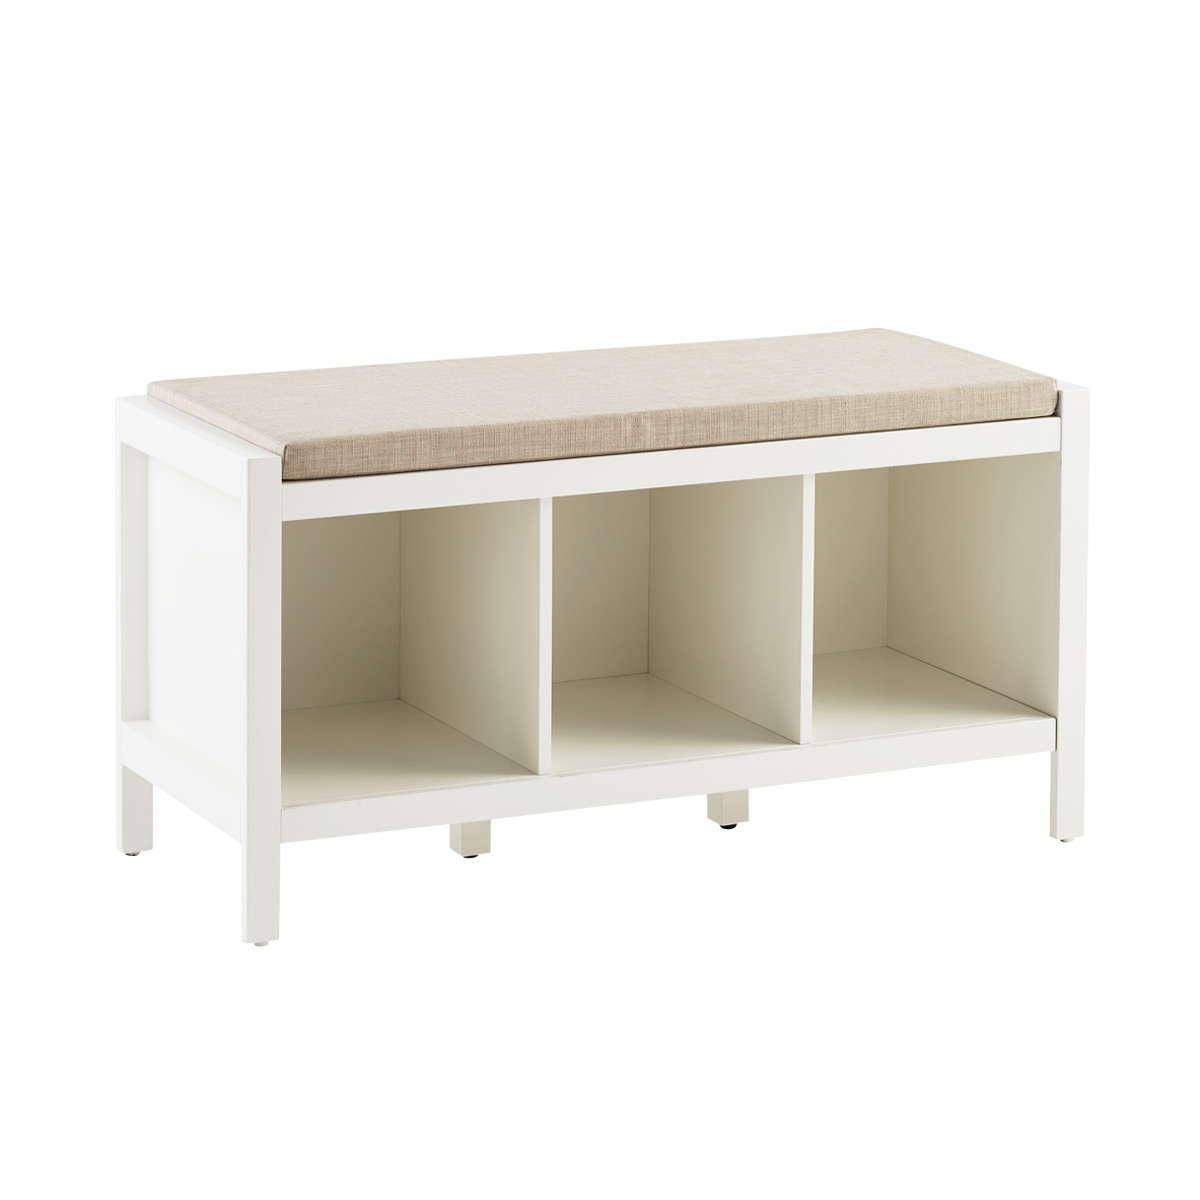 Clybourn 3 Cubby Bench White